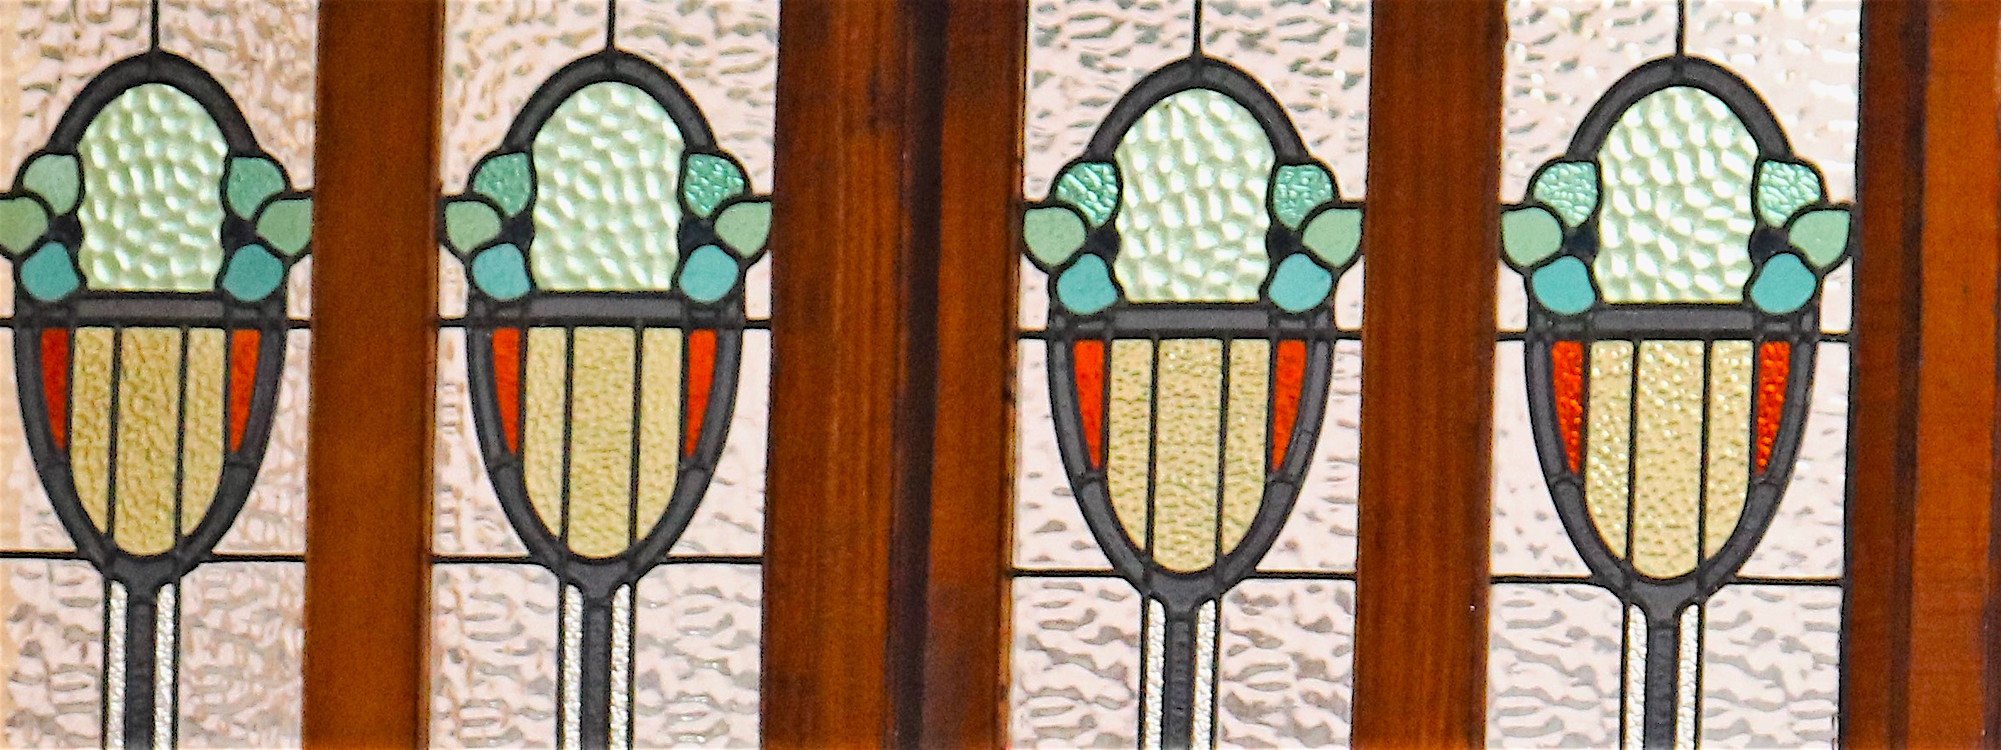 Bistro stained glass